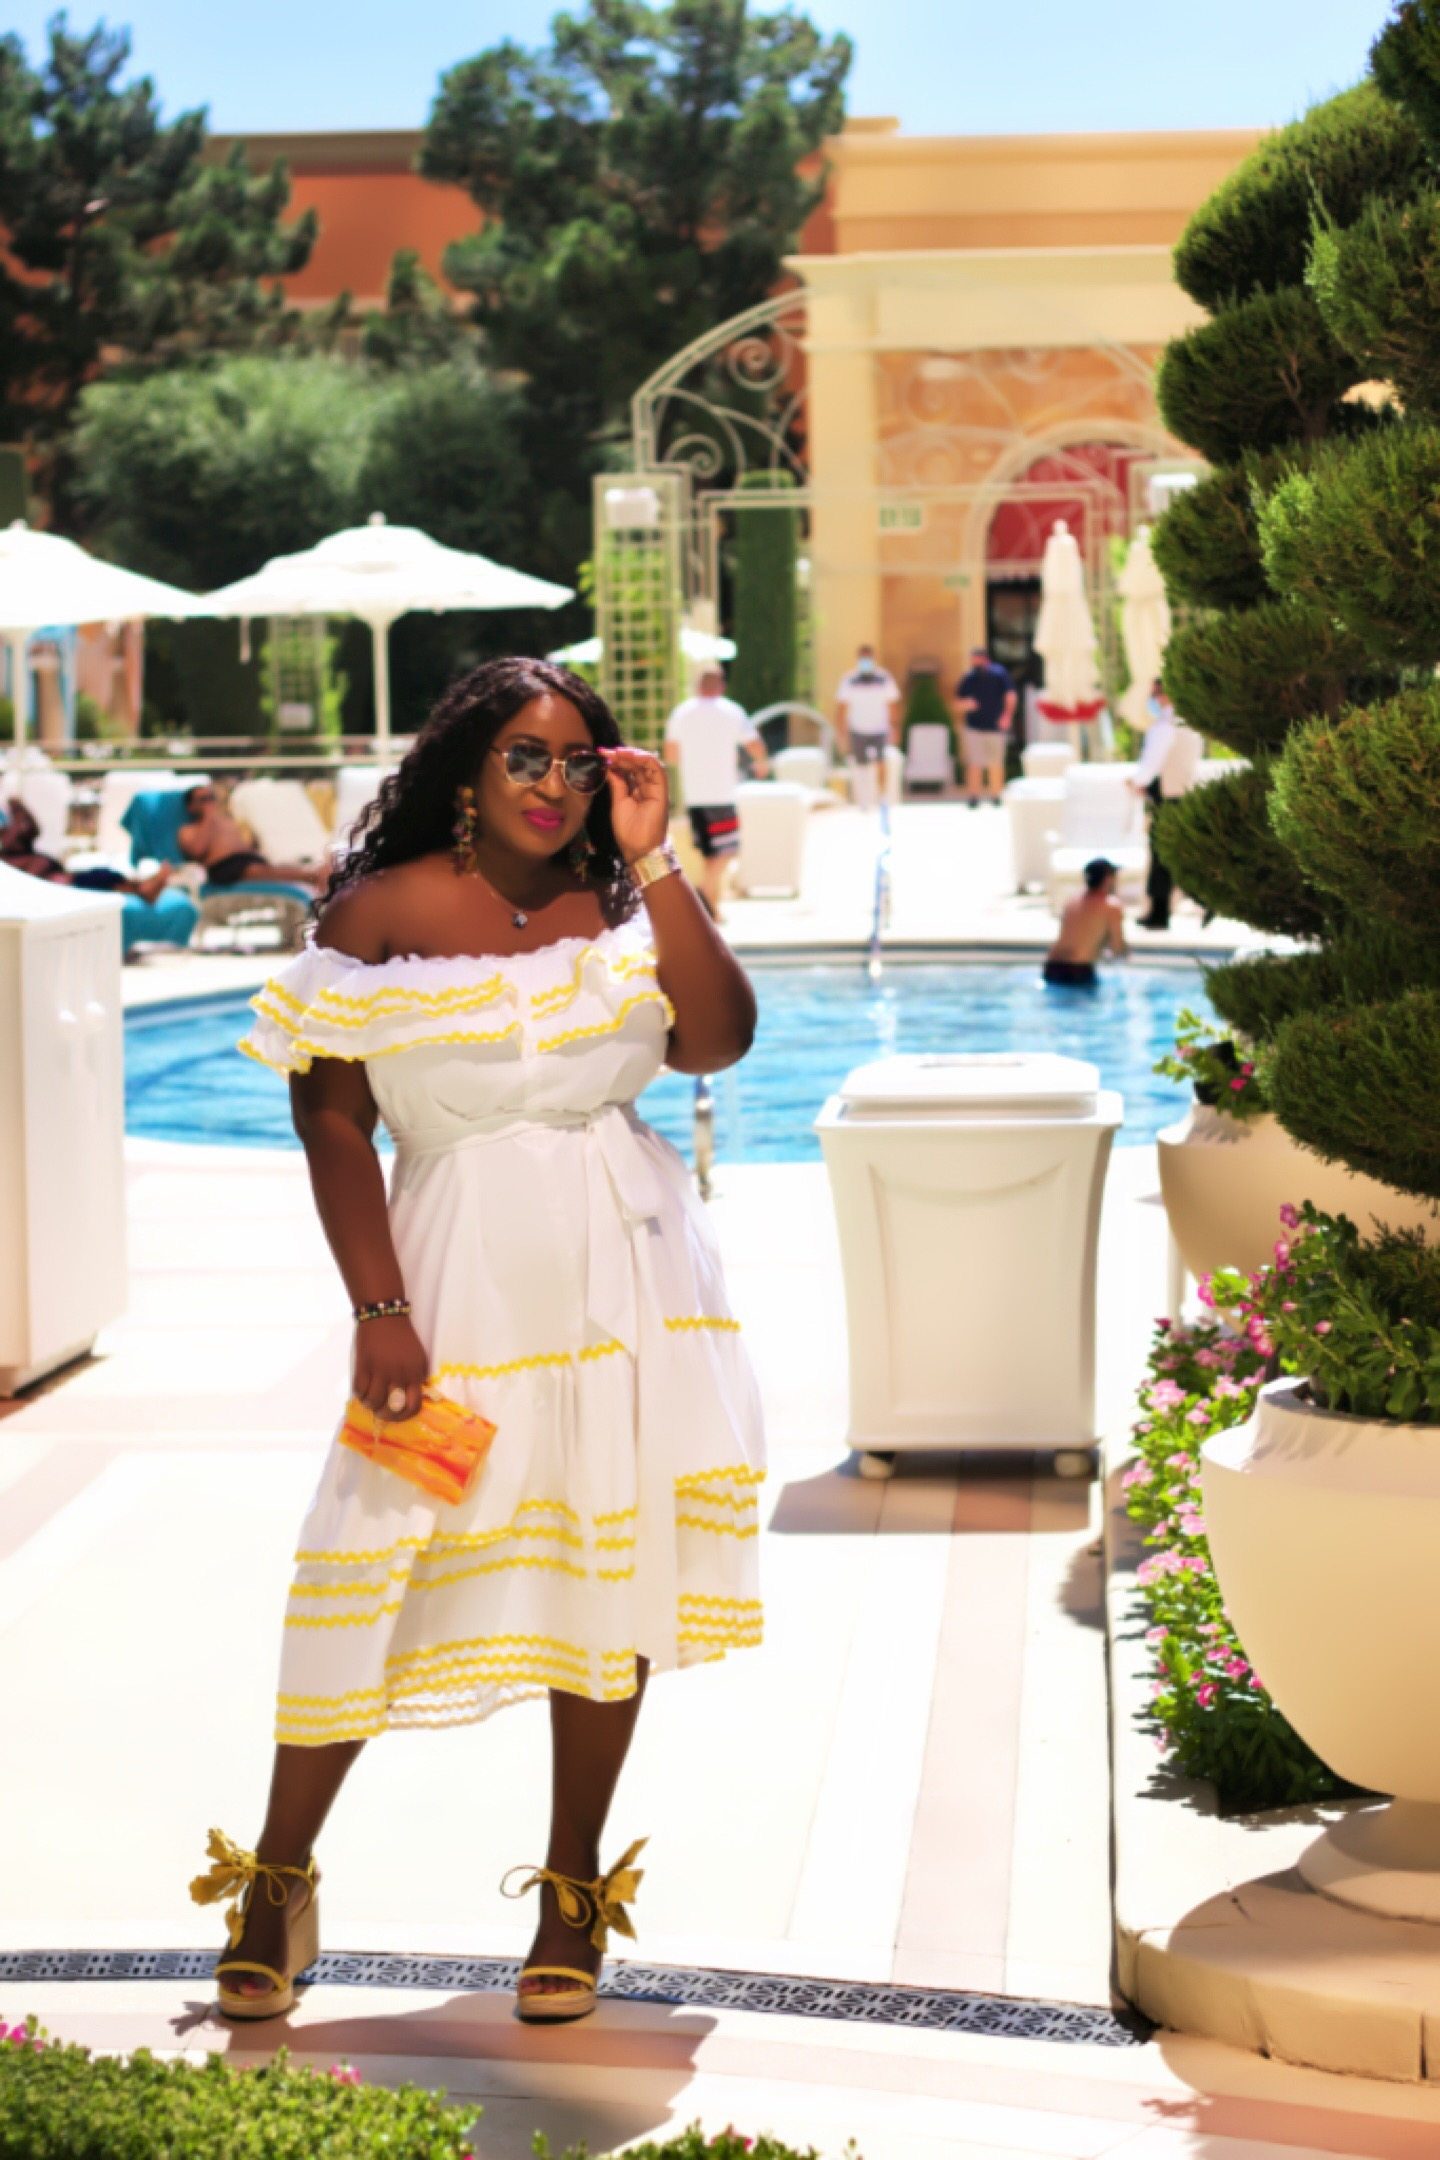 beautiful-white-fashion-dress-yellow-shoes-by-the-pool